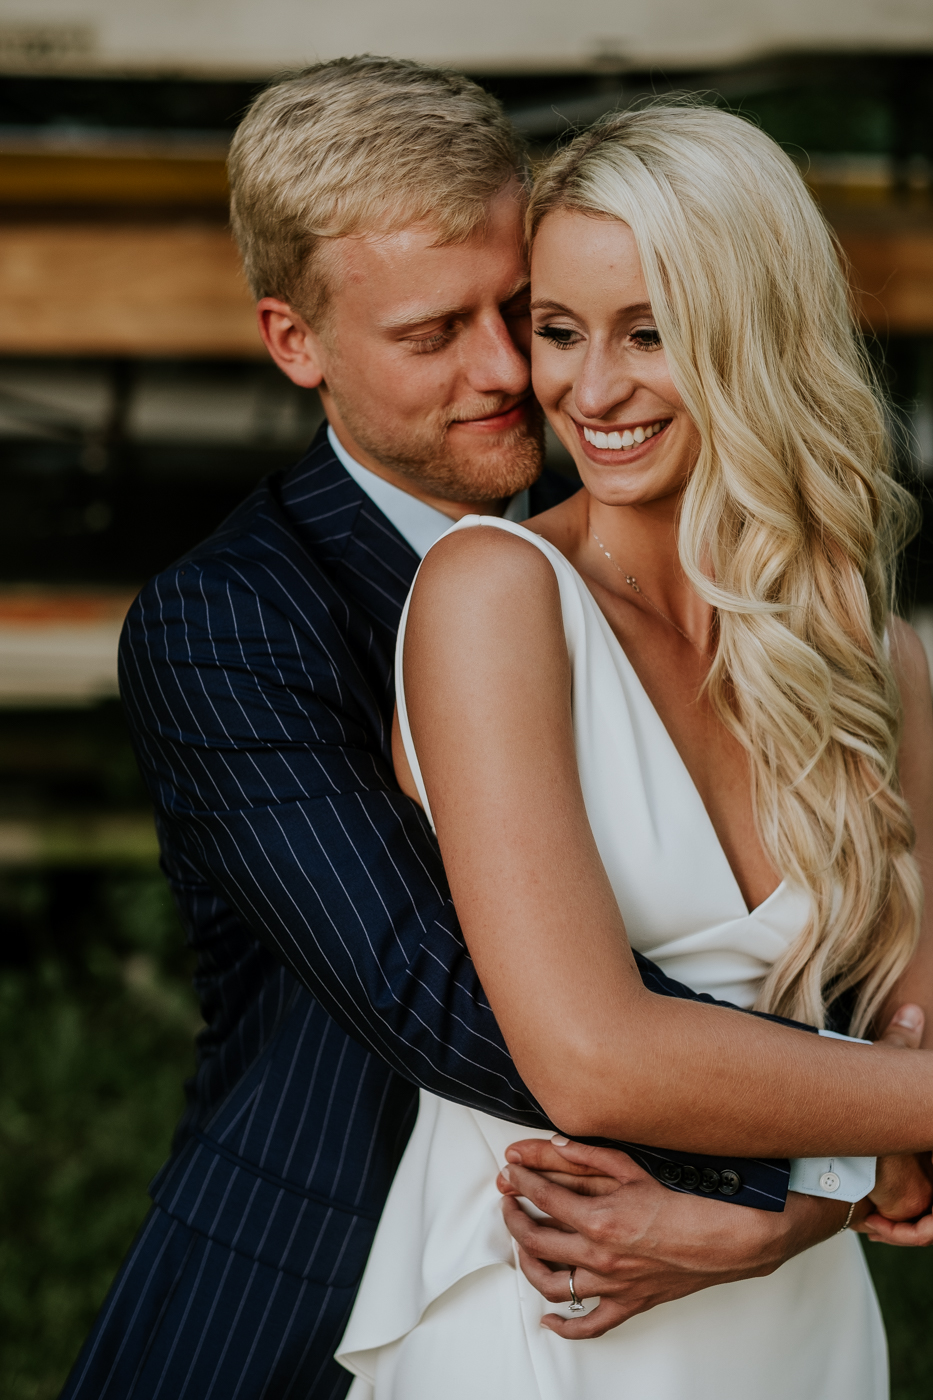 Sierra+Jacob.Wedding.Blog©mileswittboyer.com2018-130.jpg